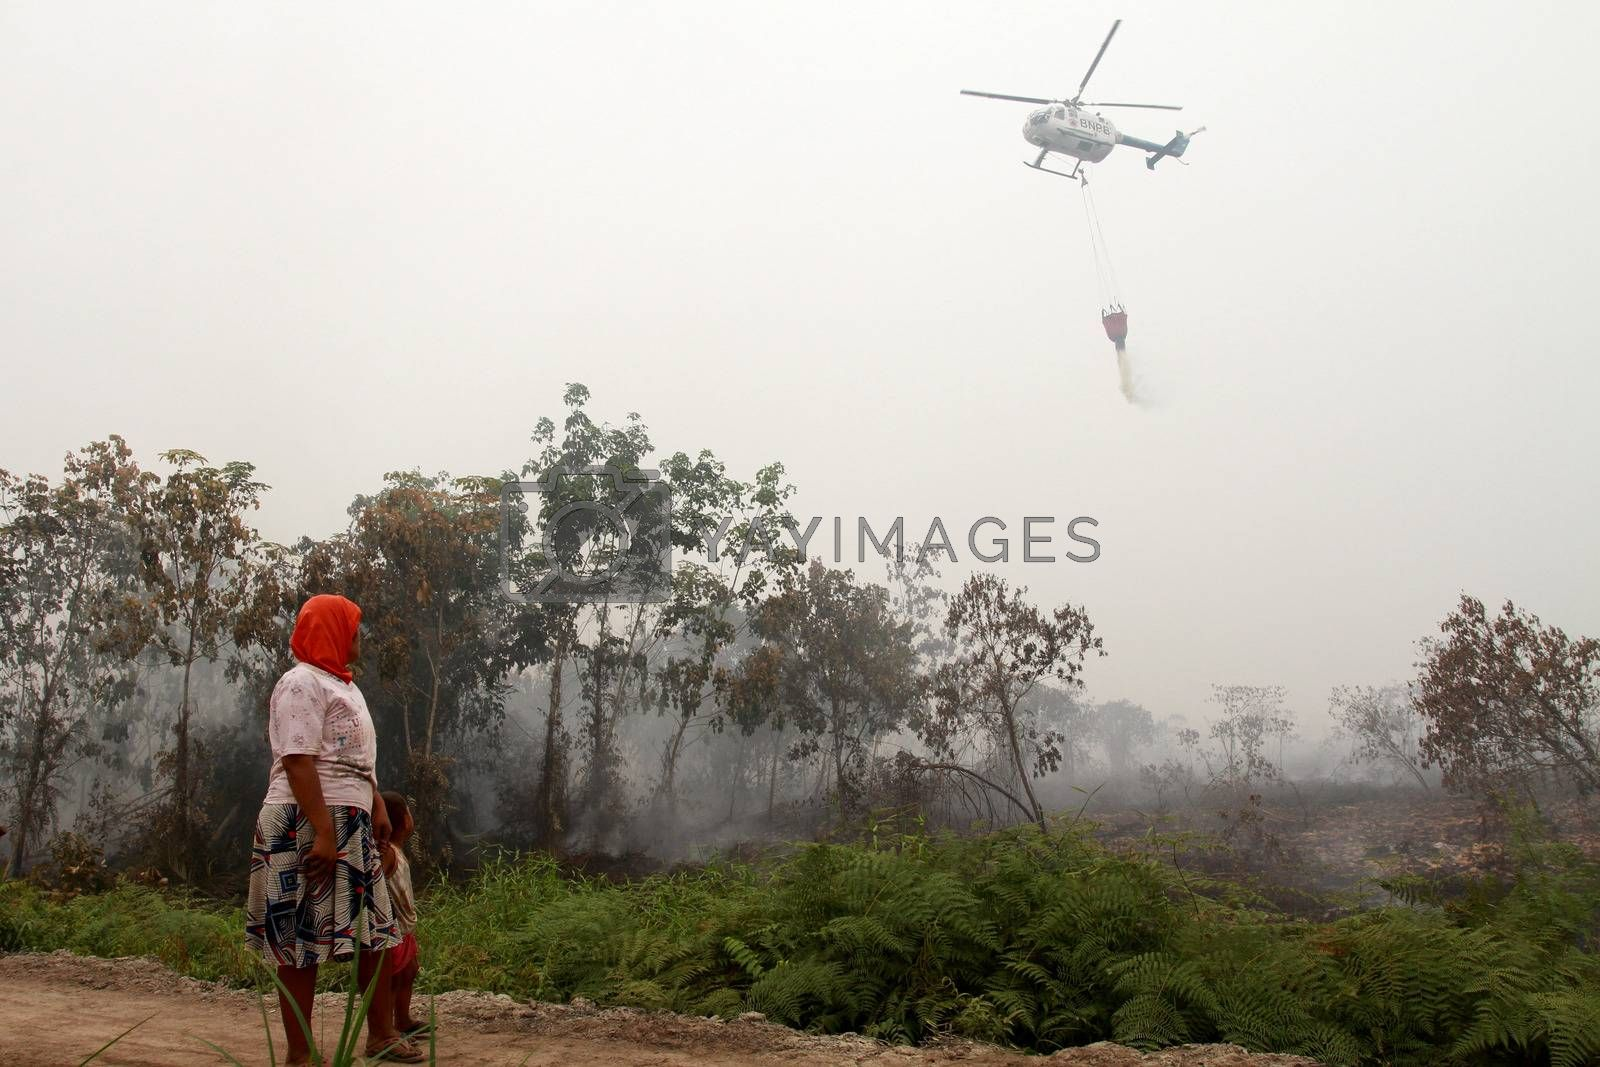 INDONESIA, Kubu Raya: An helicopter is helping to extinguish a fire at Kubu Raya district, in West Kalimantan province, on October 21, 2015. Indonesia launched its biggest operation ever to combat fires blanketing Southeast Asia in haze, an official said, with dozens of planes and thousands of troops battling the widespread blazes.